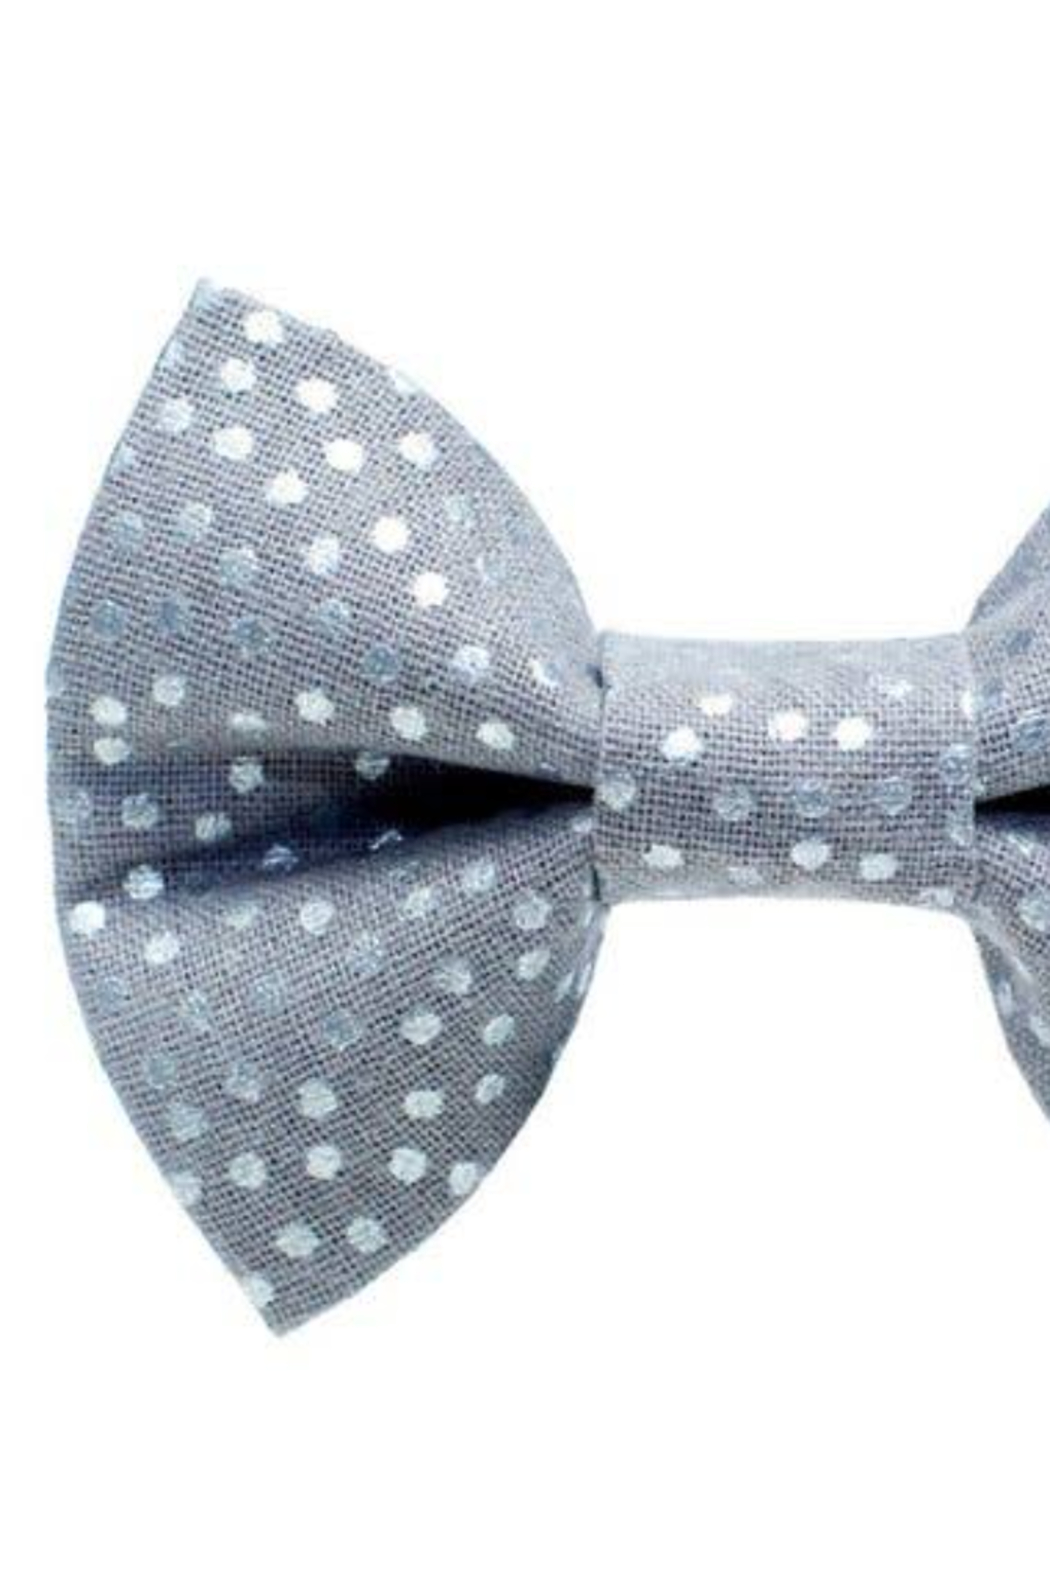 Sweet Pickles Designs The Kittylicous - Cat / Dog Bow Tie - Main Image